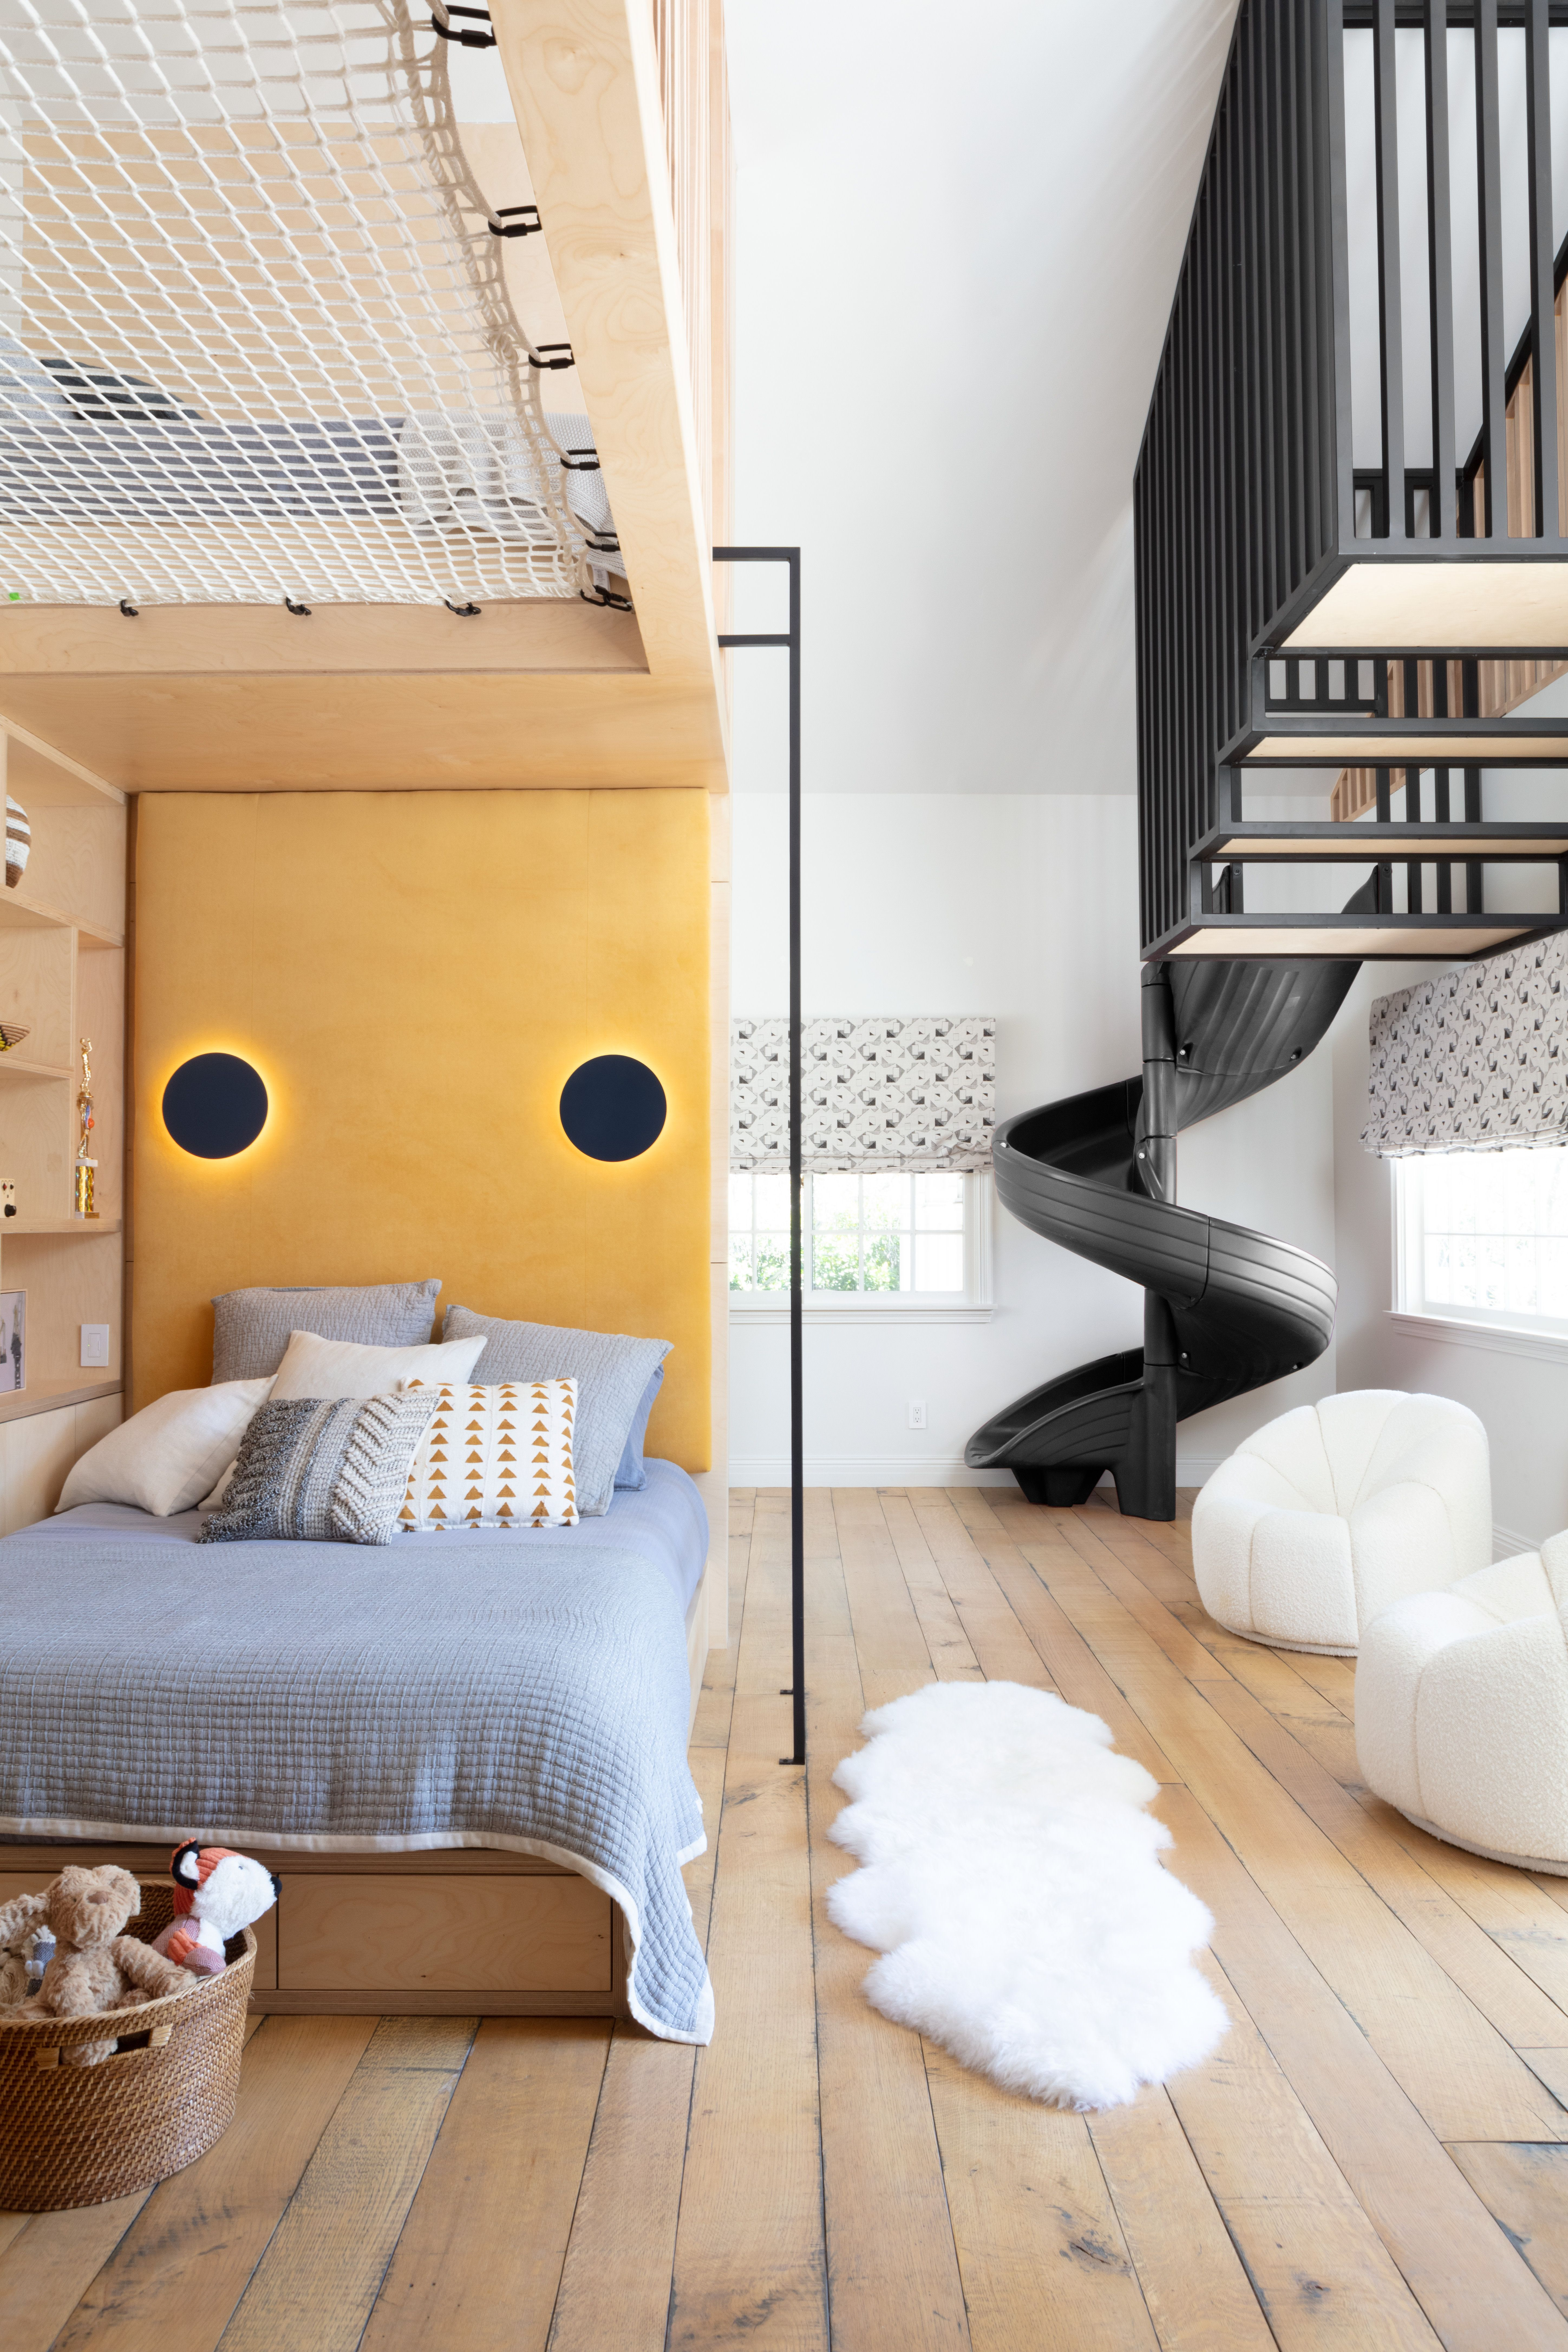 3 Kids Bedroom Ideas We Learned From This Playful L.A ...